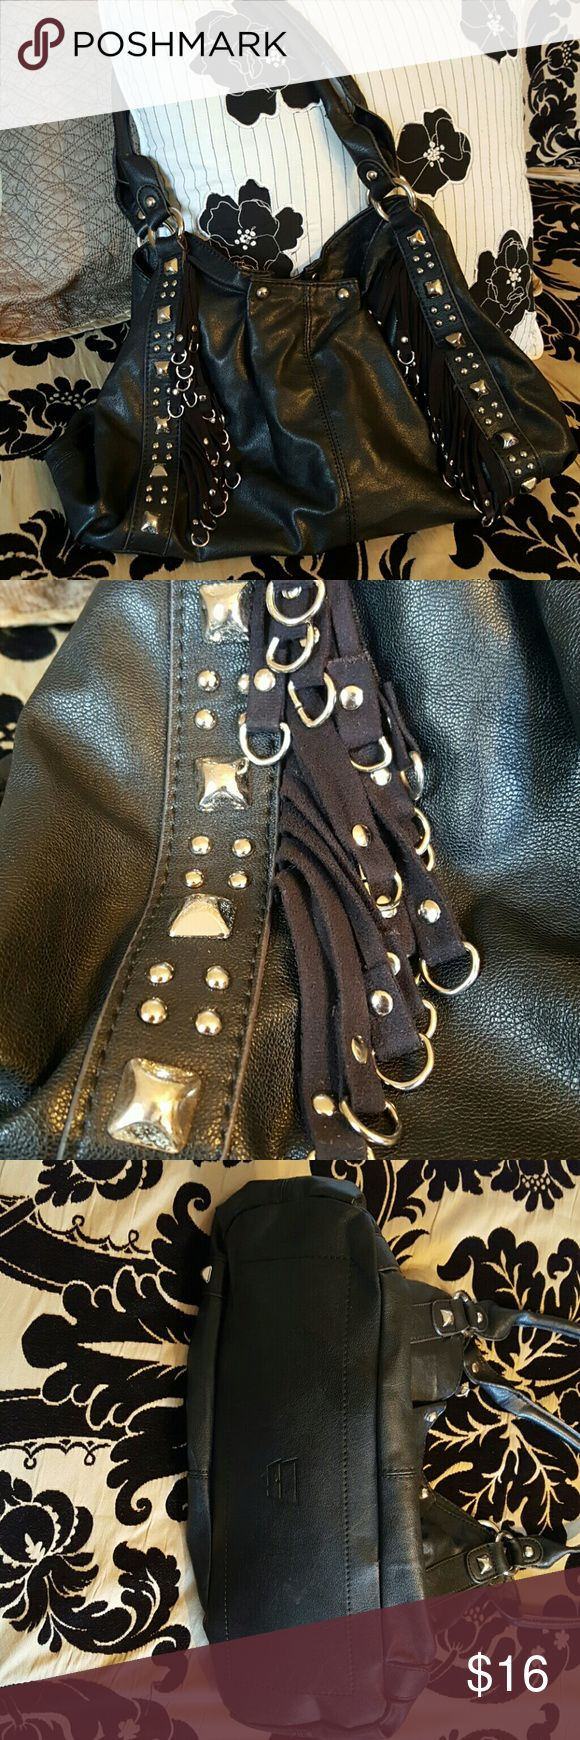 Kathy Van Zeeland fringe purse This black purse is a perfect go to! It's so soft and durable. It has two magnetic clasp parts and the middle zips up. There is spent makeup in one side of the snaps as seen in the picture. Kathy Van Zeeland Bags Shoulder Bags